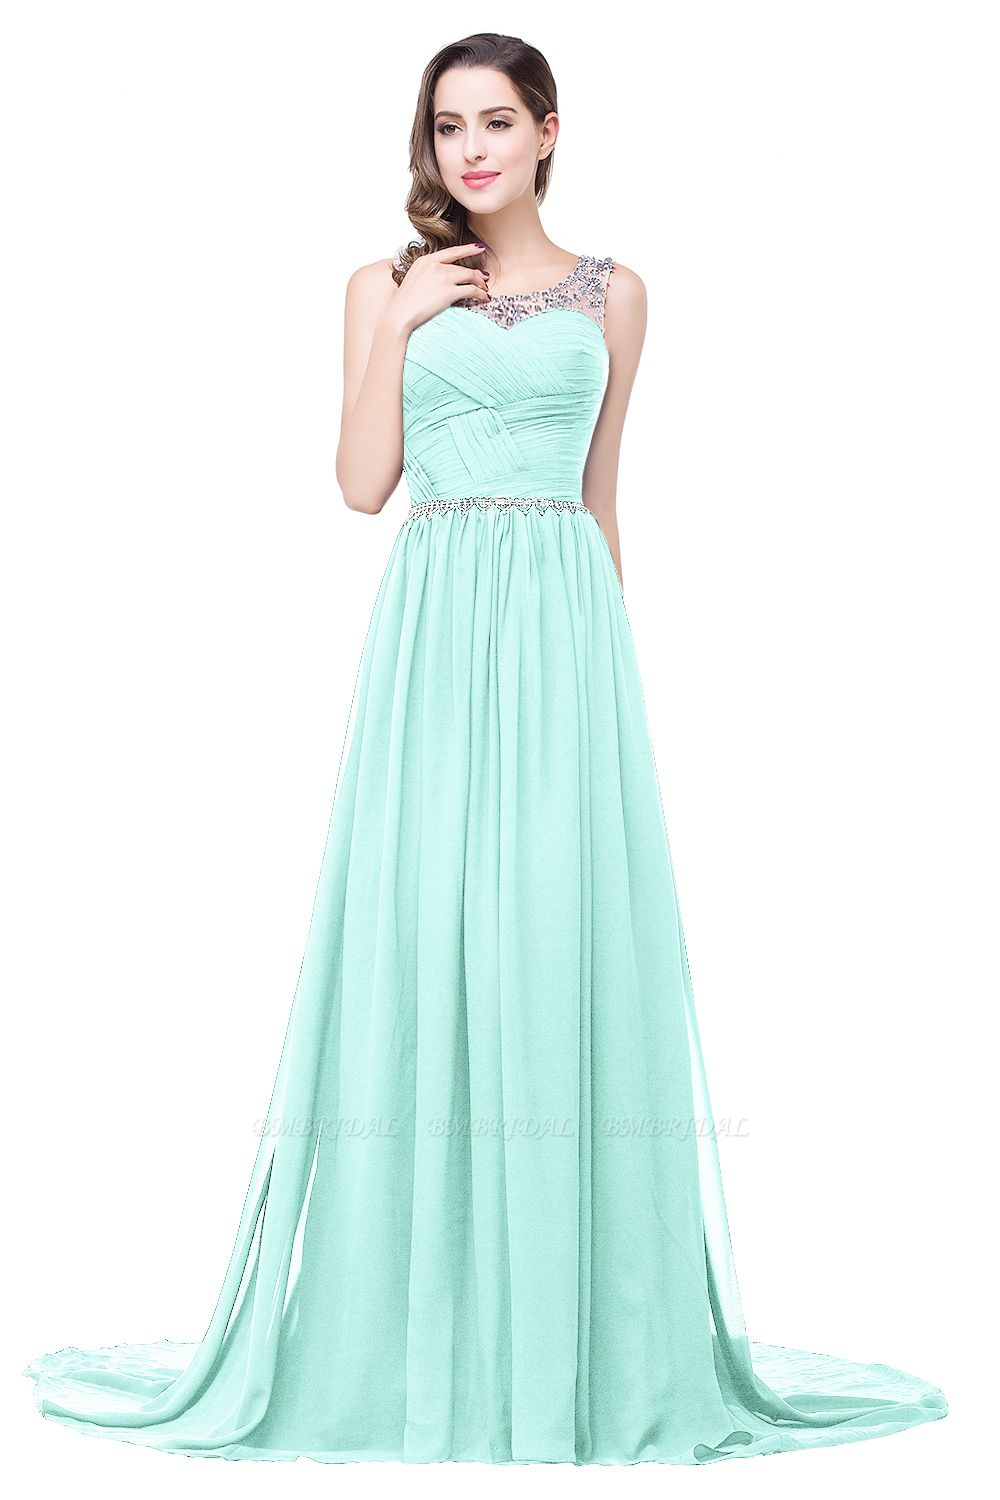 BMbridal A-line Court Train Chiffon Party Dress With Beading